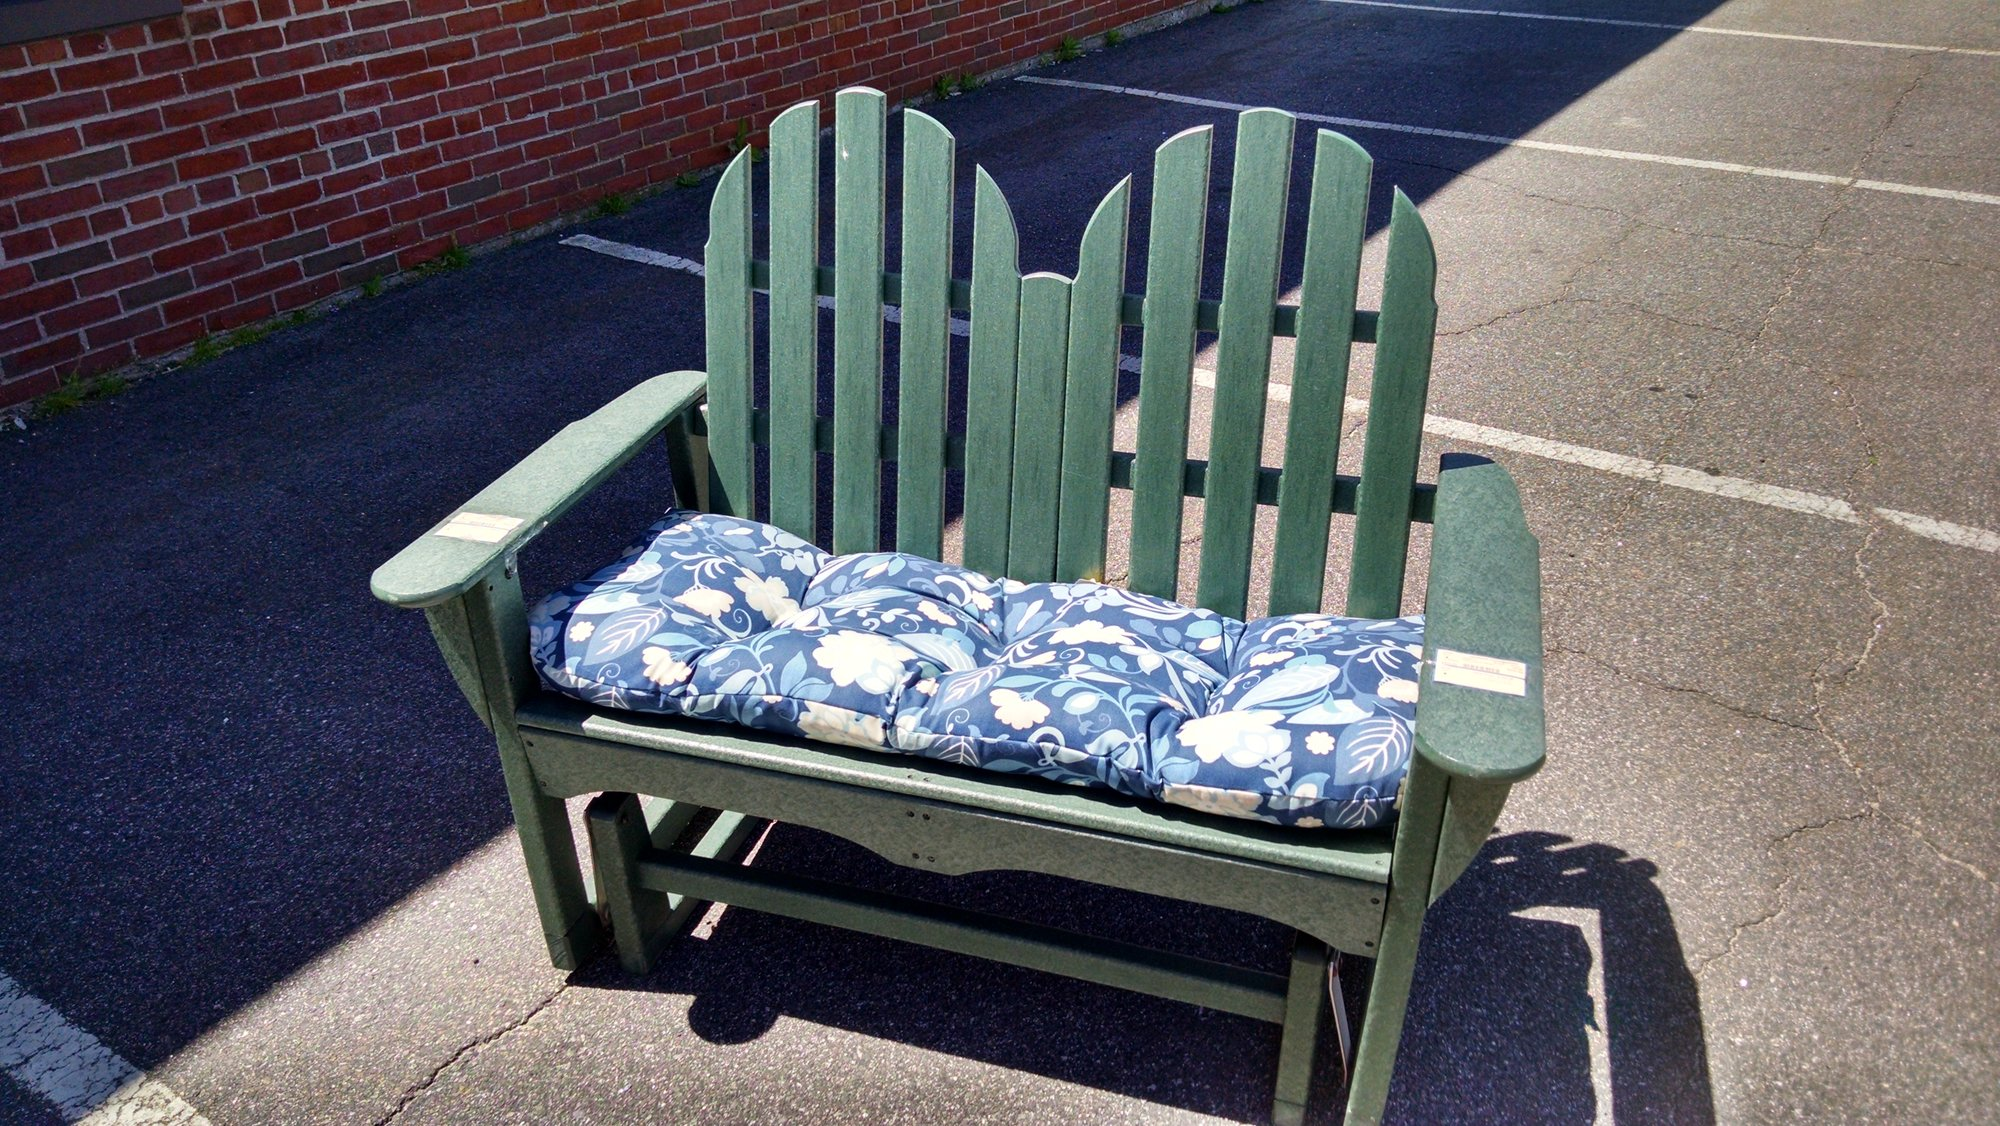 An Adirondack Glider in all weather extruded viynl wood similar to all weather deck material. Super well made, will last outdoor for years. Glide on in and check it out!